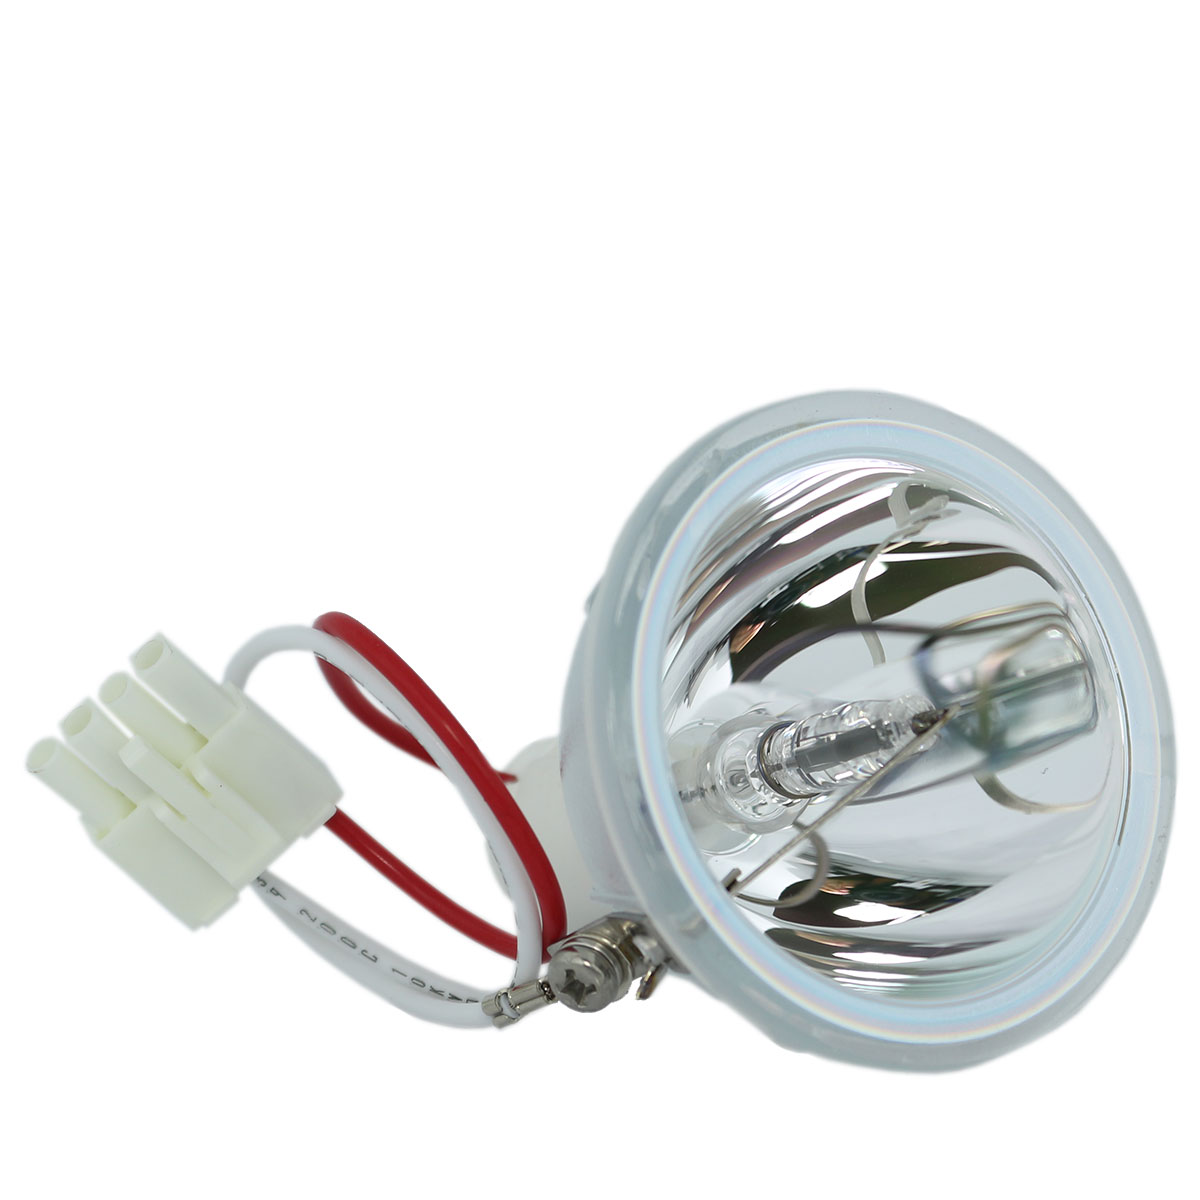 Lutema Economy Bulb for InFocus Work Big IN26 Projector (Lamp Only) - image 4 de 5